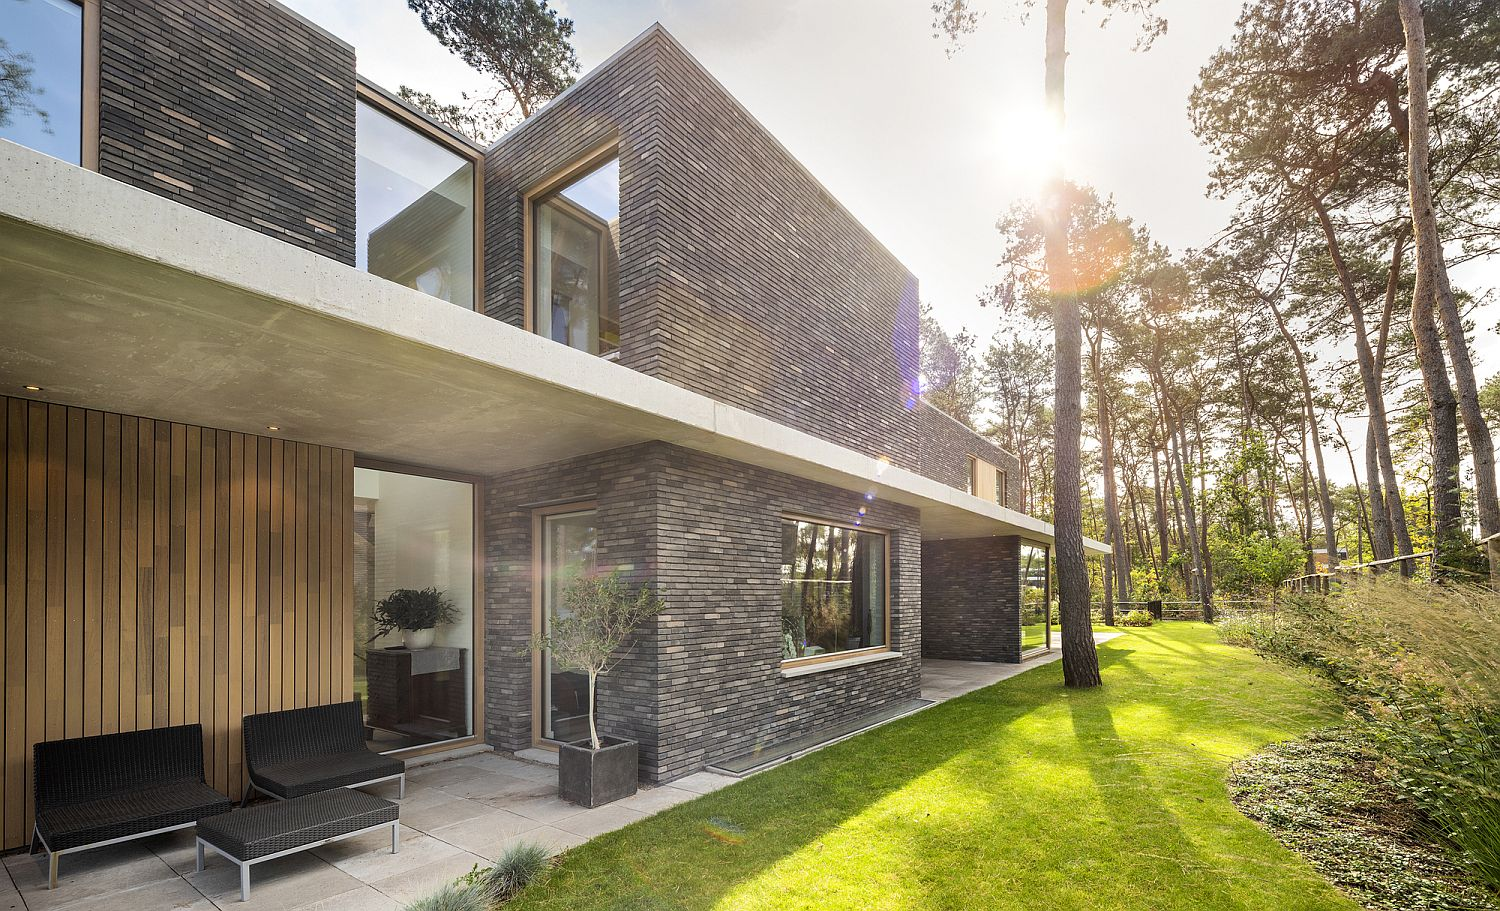 Concrete horizontal frames offer contrast visually outside the house